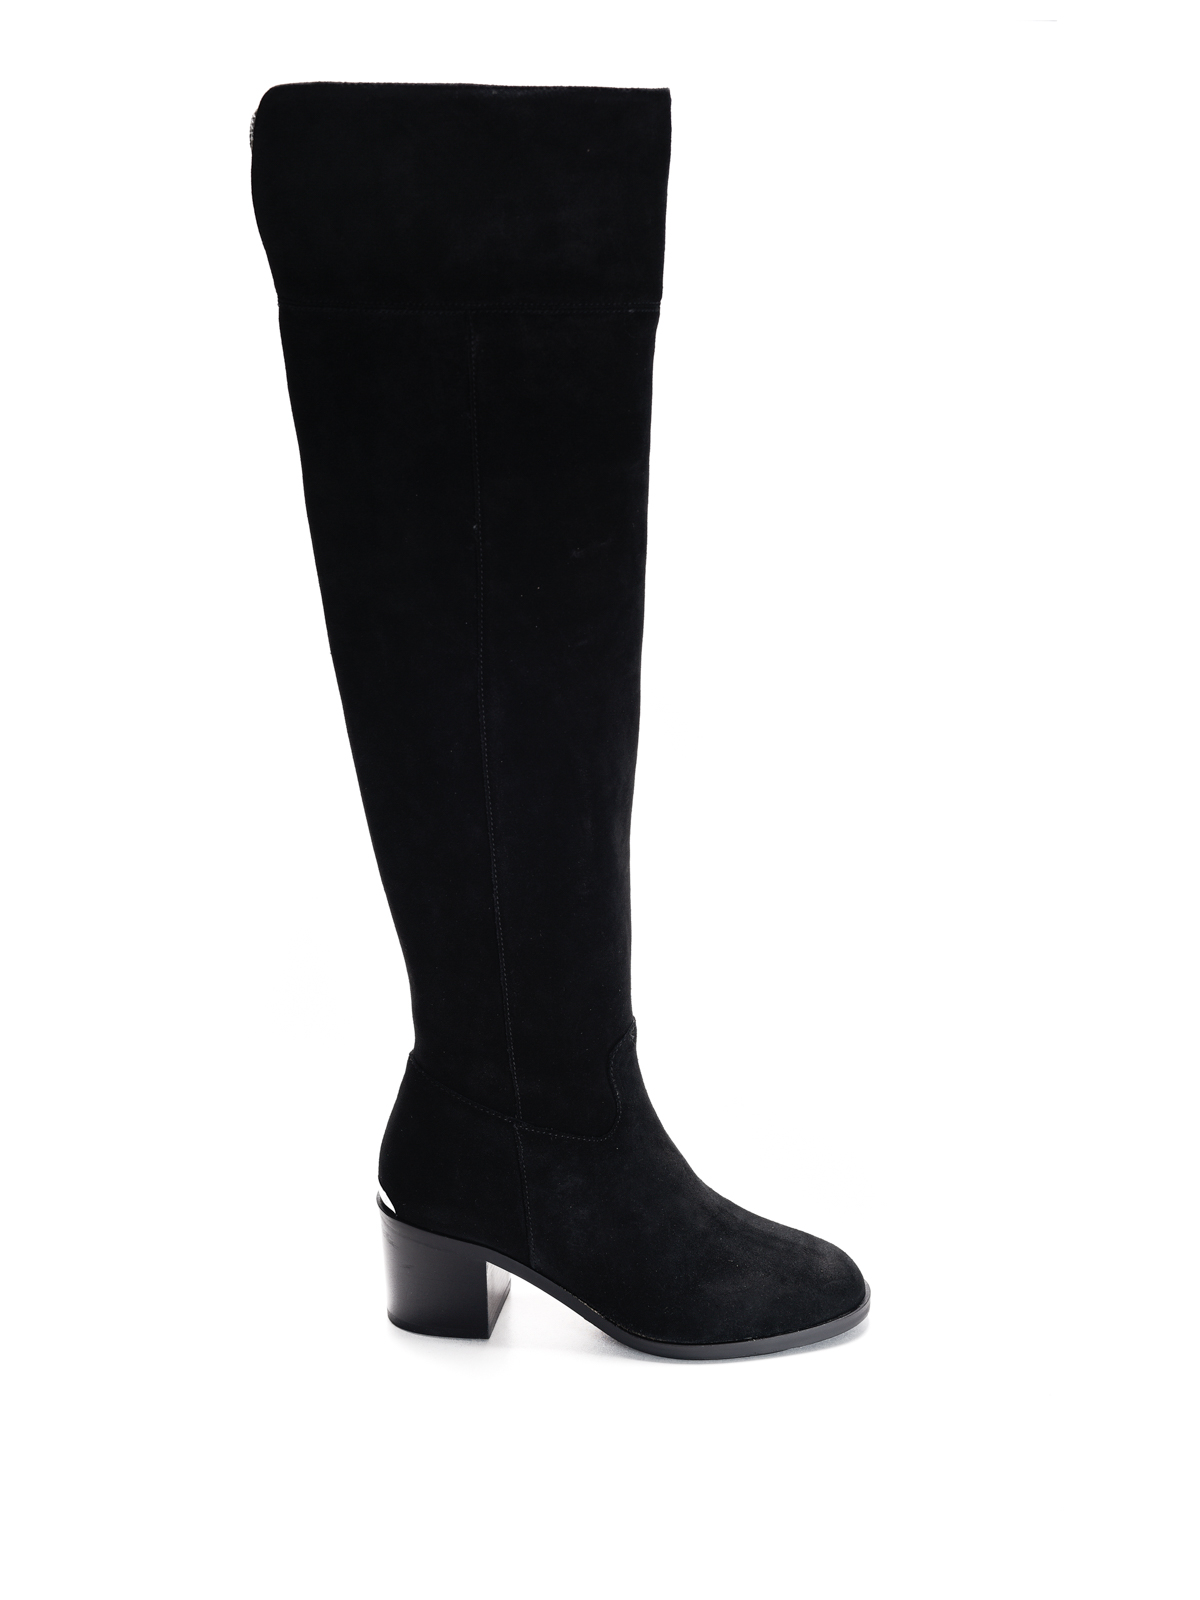 paulette suede boots by michael kors boots ikrix